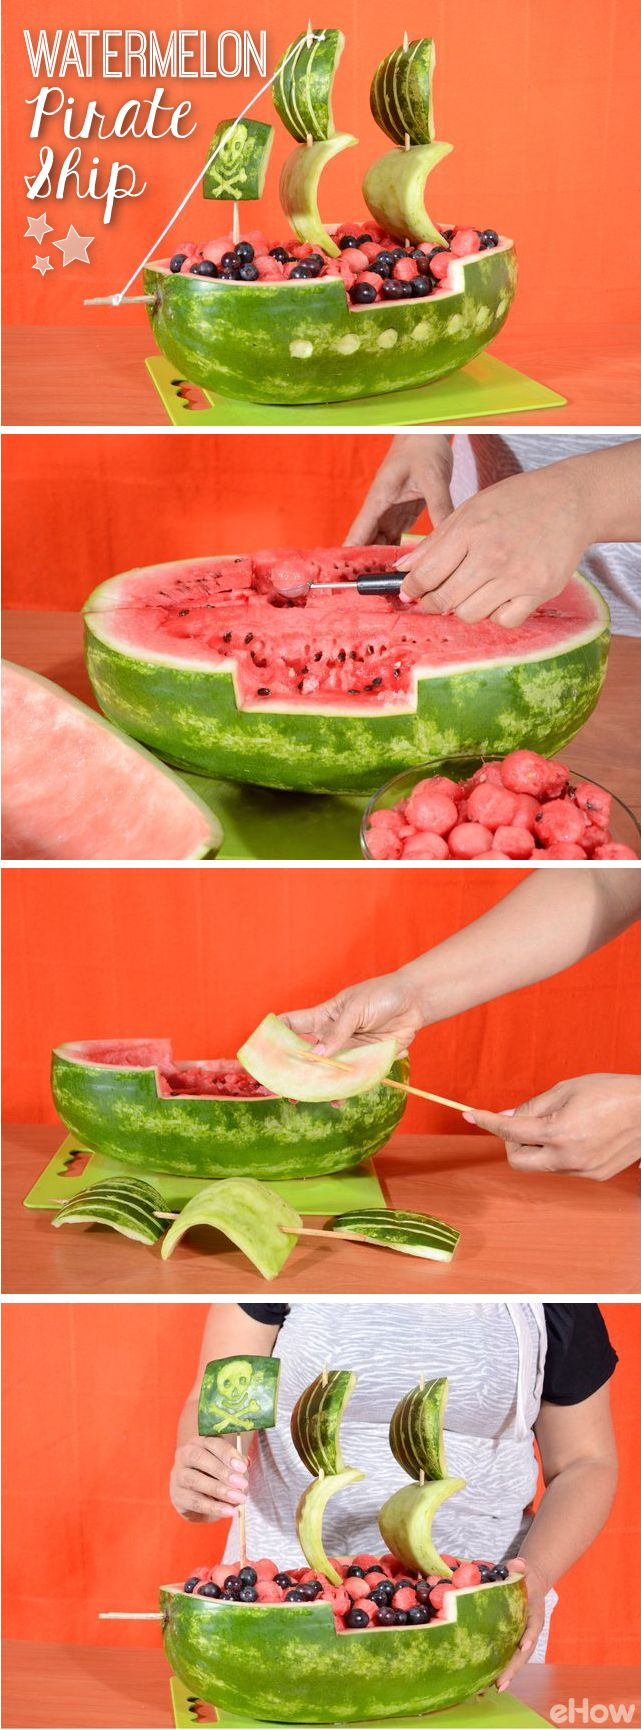 Photo of How to Carve a Watermelon Into a Pirate Ship